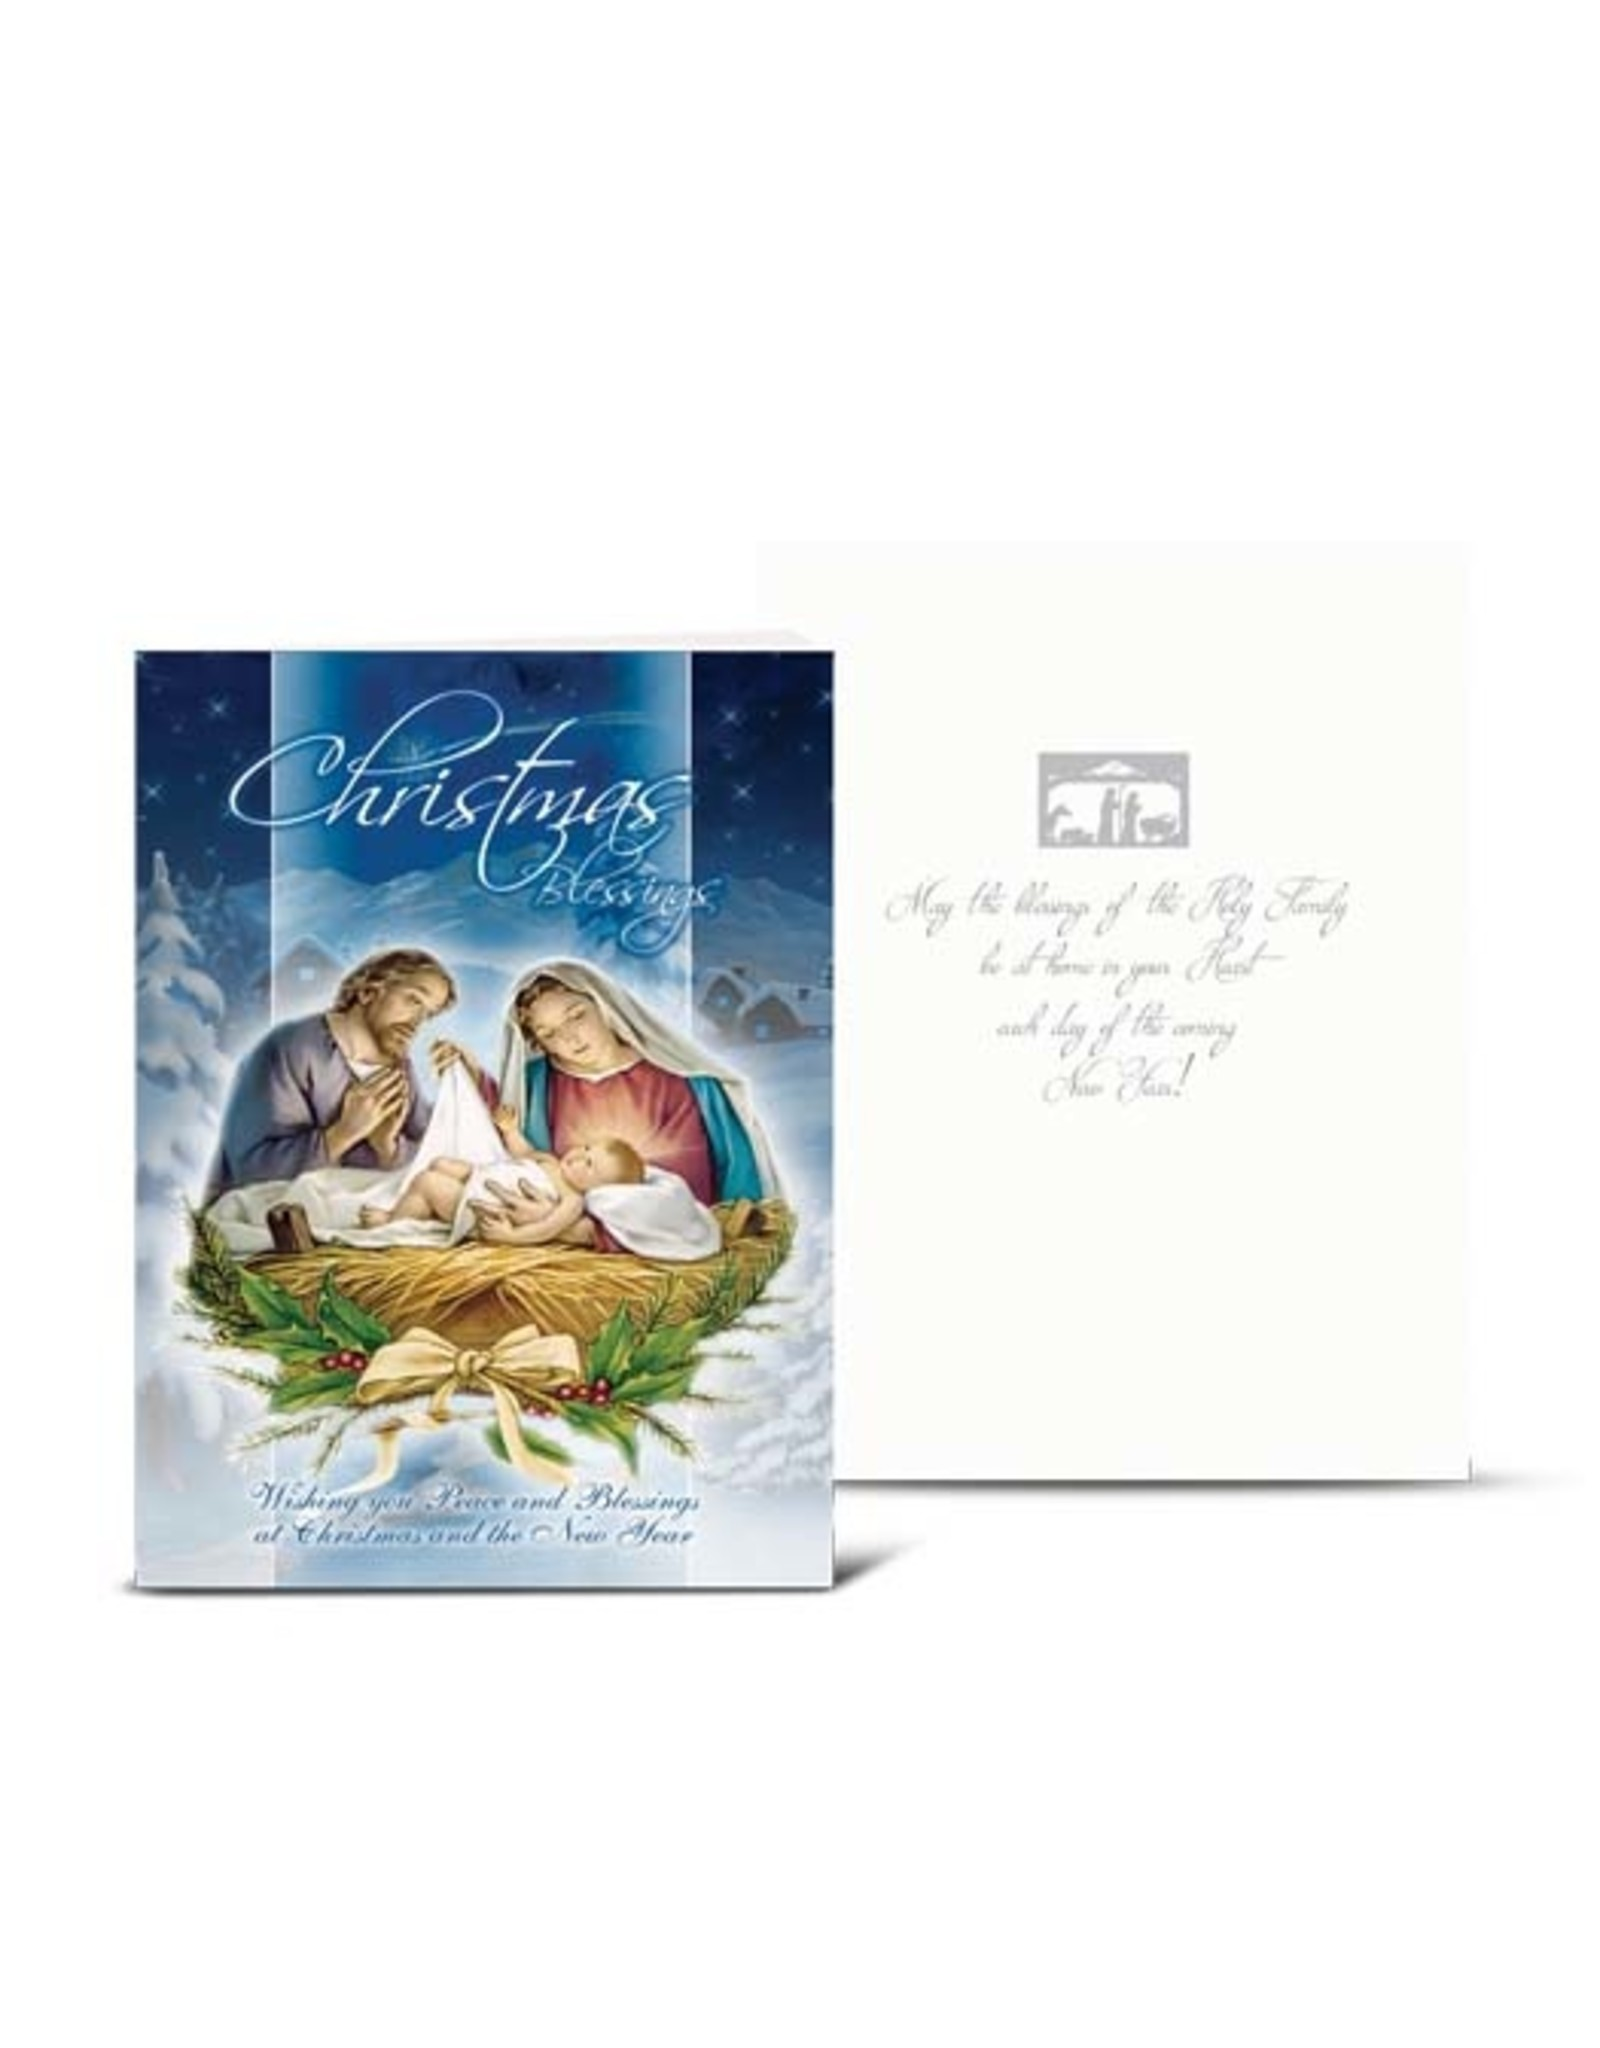 Christmas Nativity Scene (Holy Family) Card